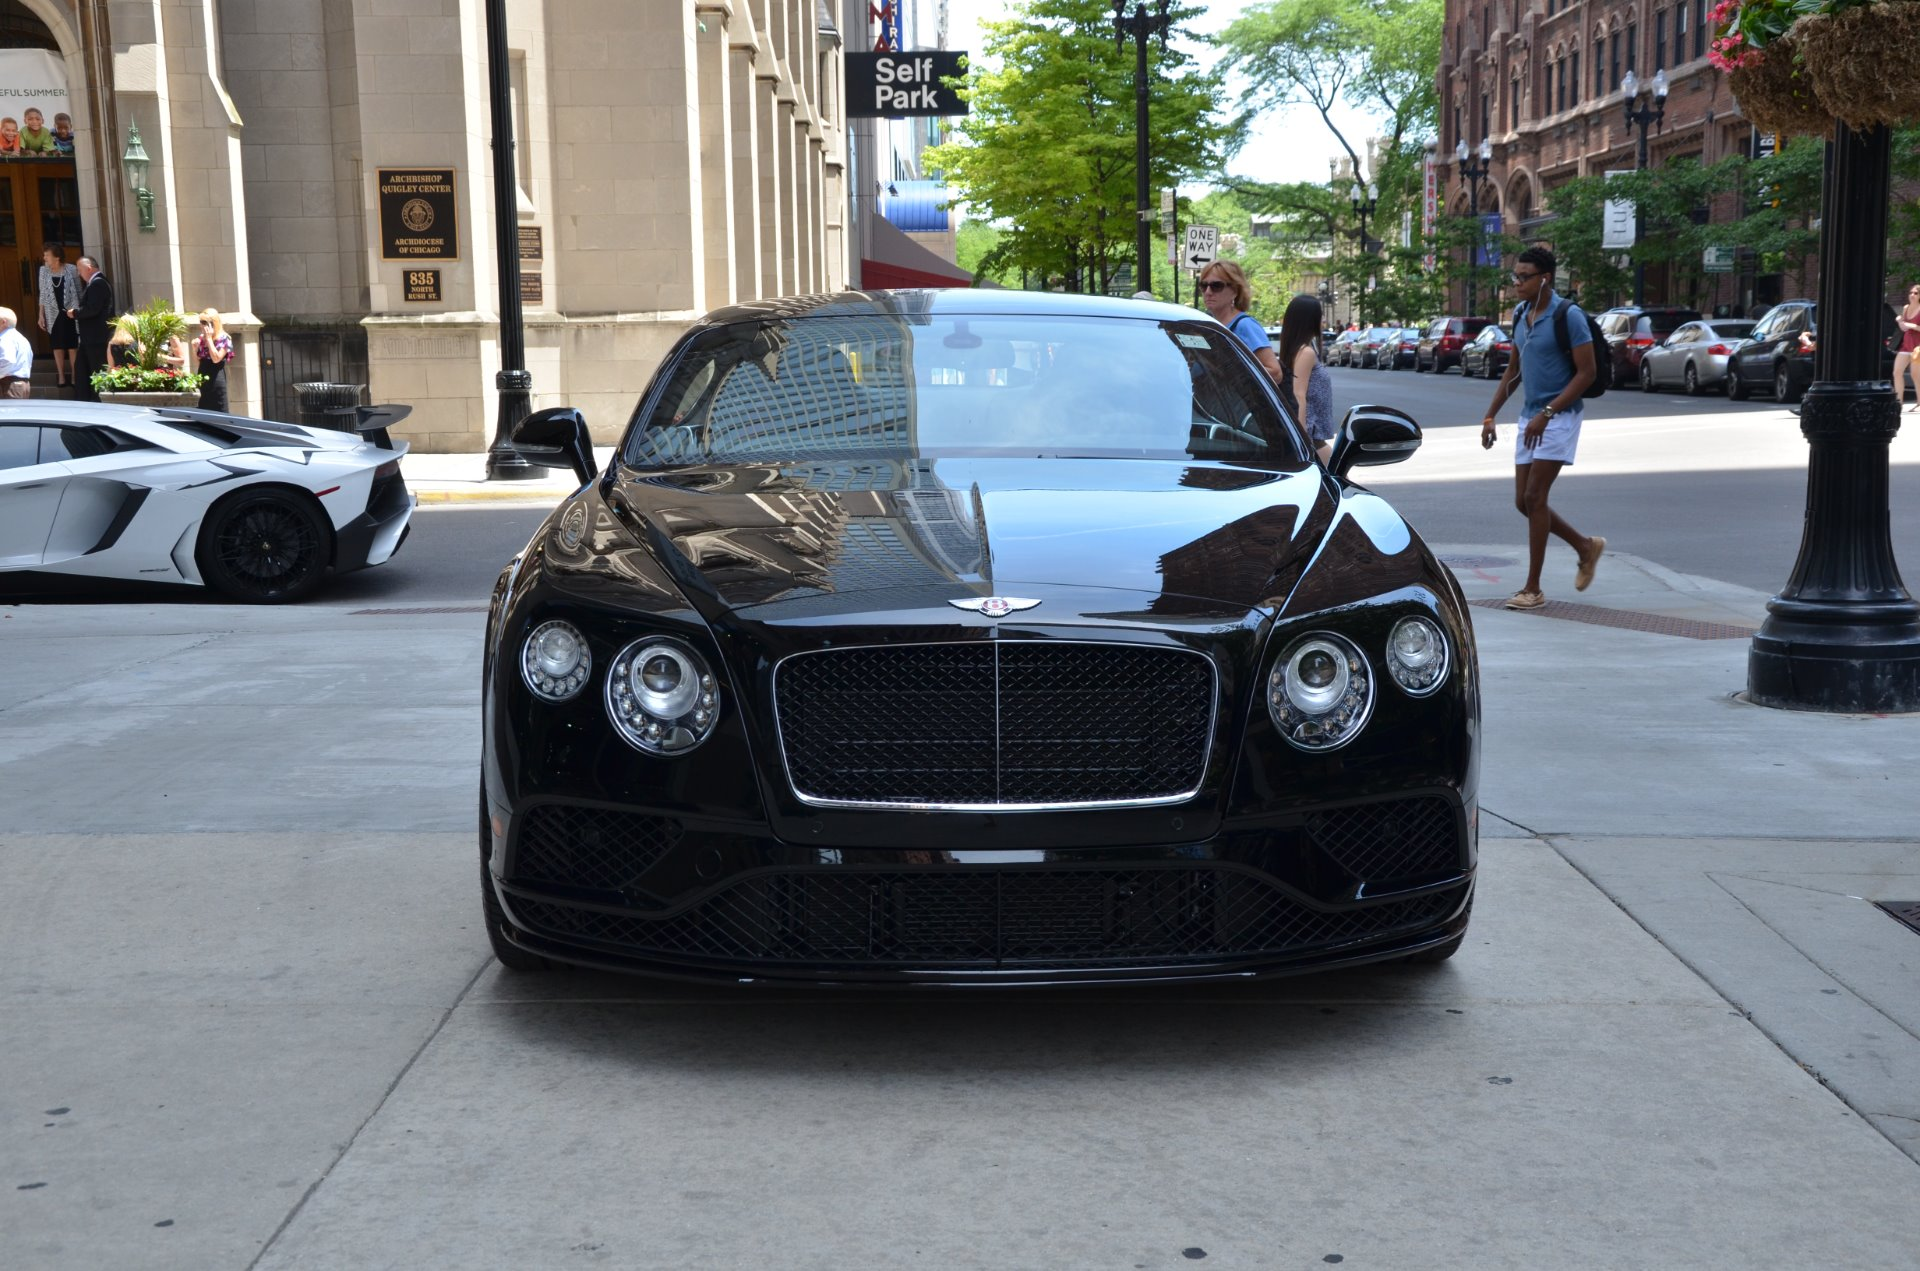 2016 bentley continental gt v8 s stock b789 s for sale near chicago il il bentley dealer. Black Bedroom Furniture Sets. Home Design Ideas